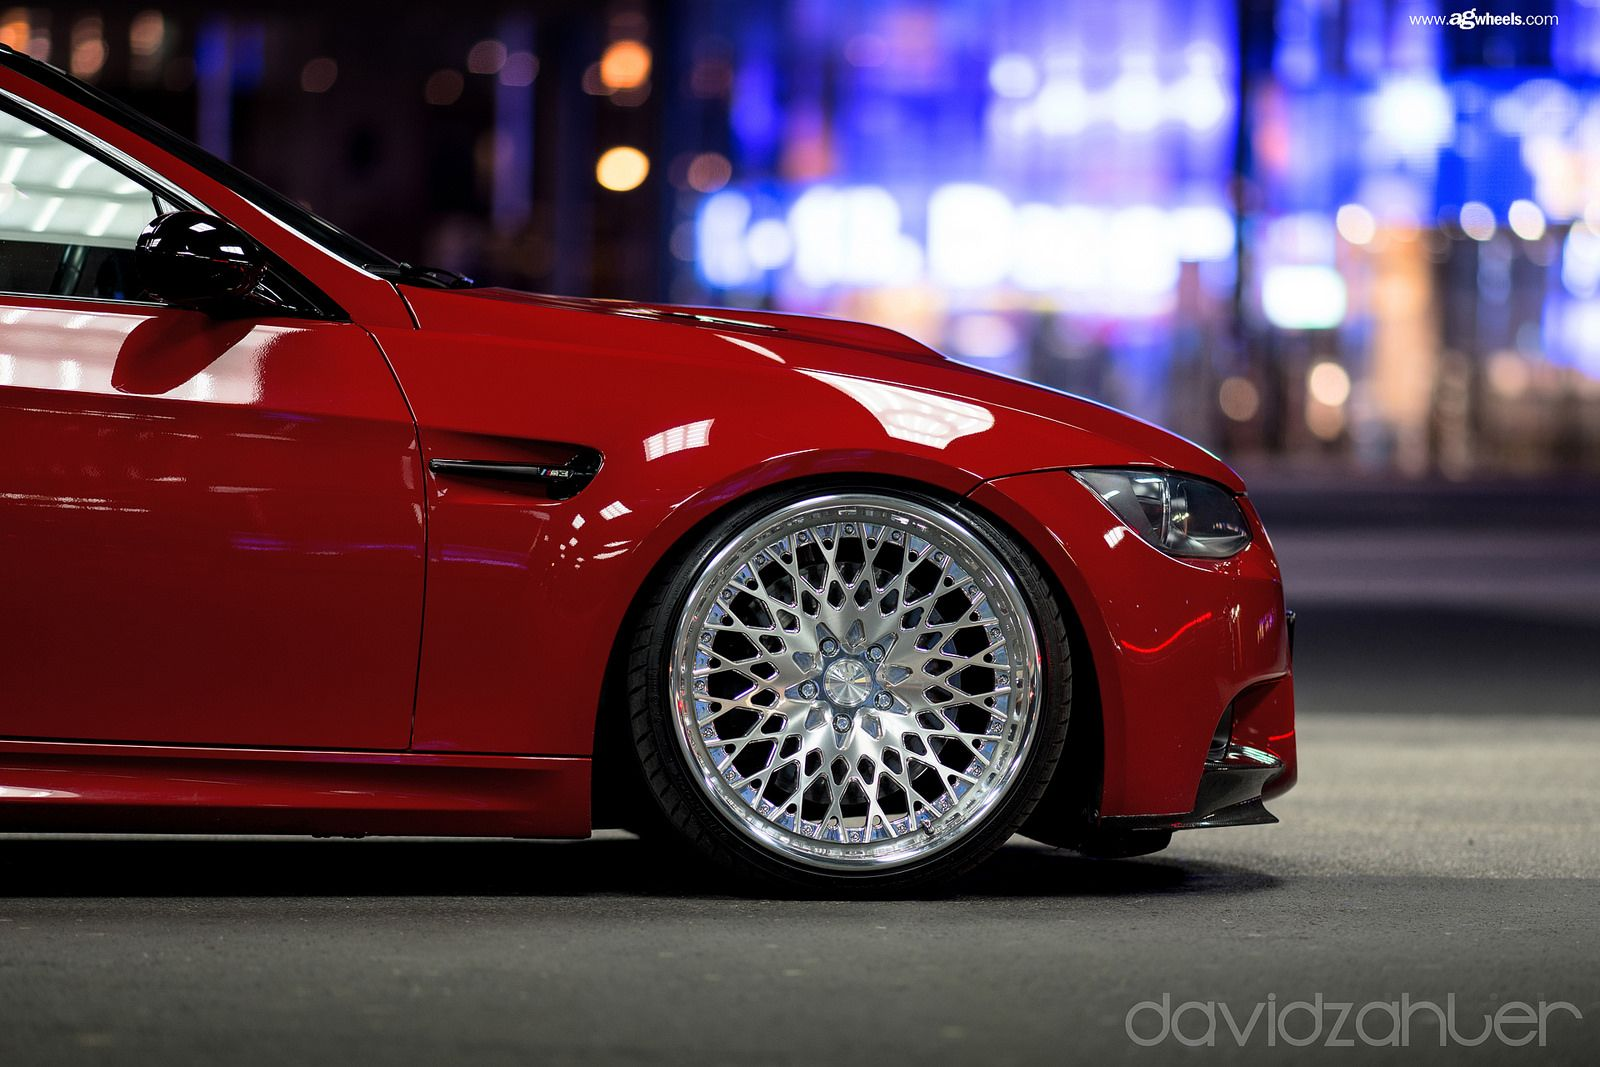 The ultimate bmw wheel thread vossen wheels and avant garde wheels